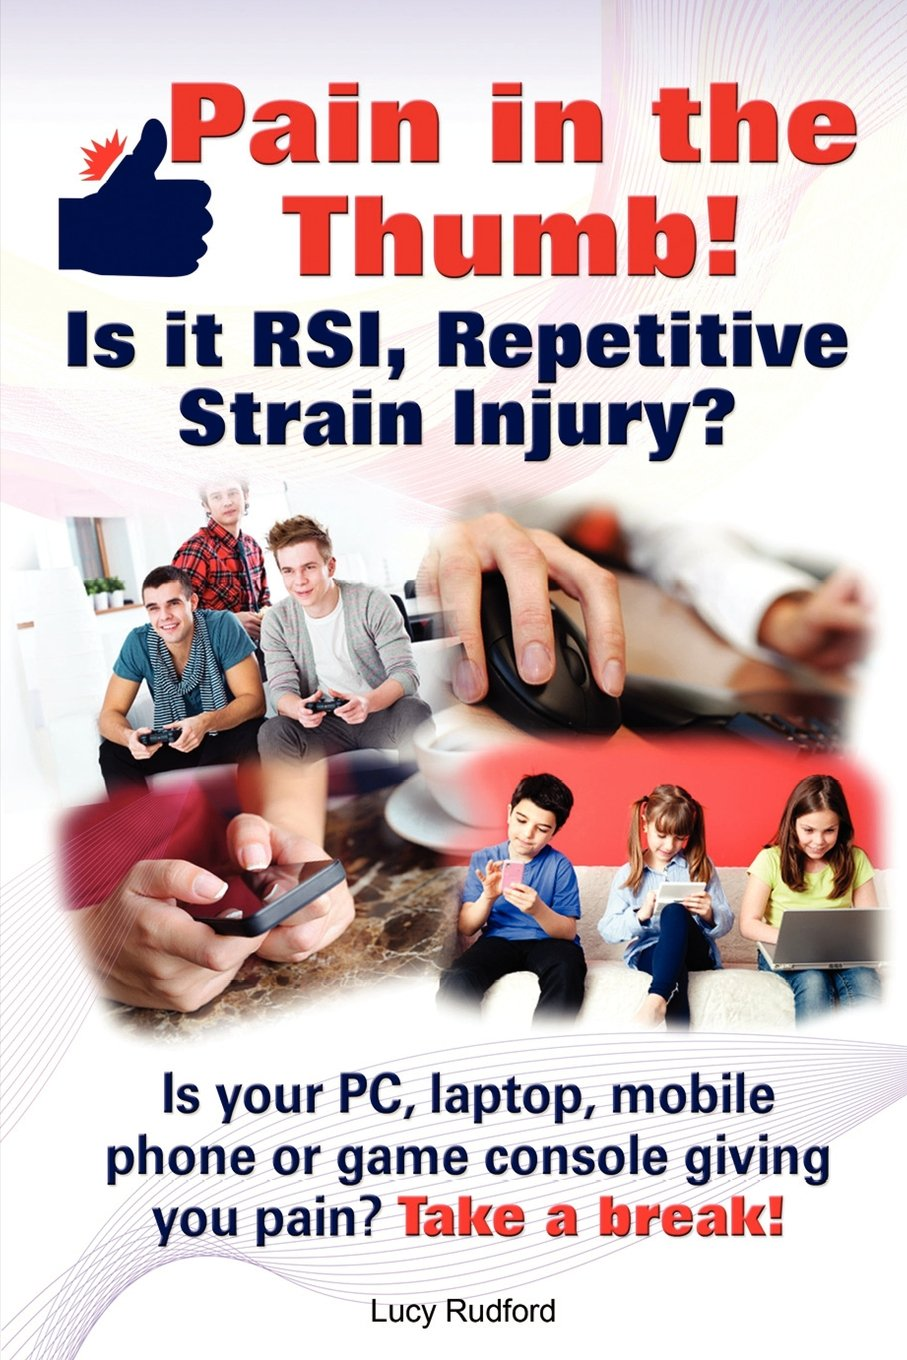 Download Pain in the thumb! Is it RSI, Repetitive Strain Injury? Is your PC, laptop, mobile phone or game console giving you pain? It could be RSI! pdf epub